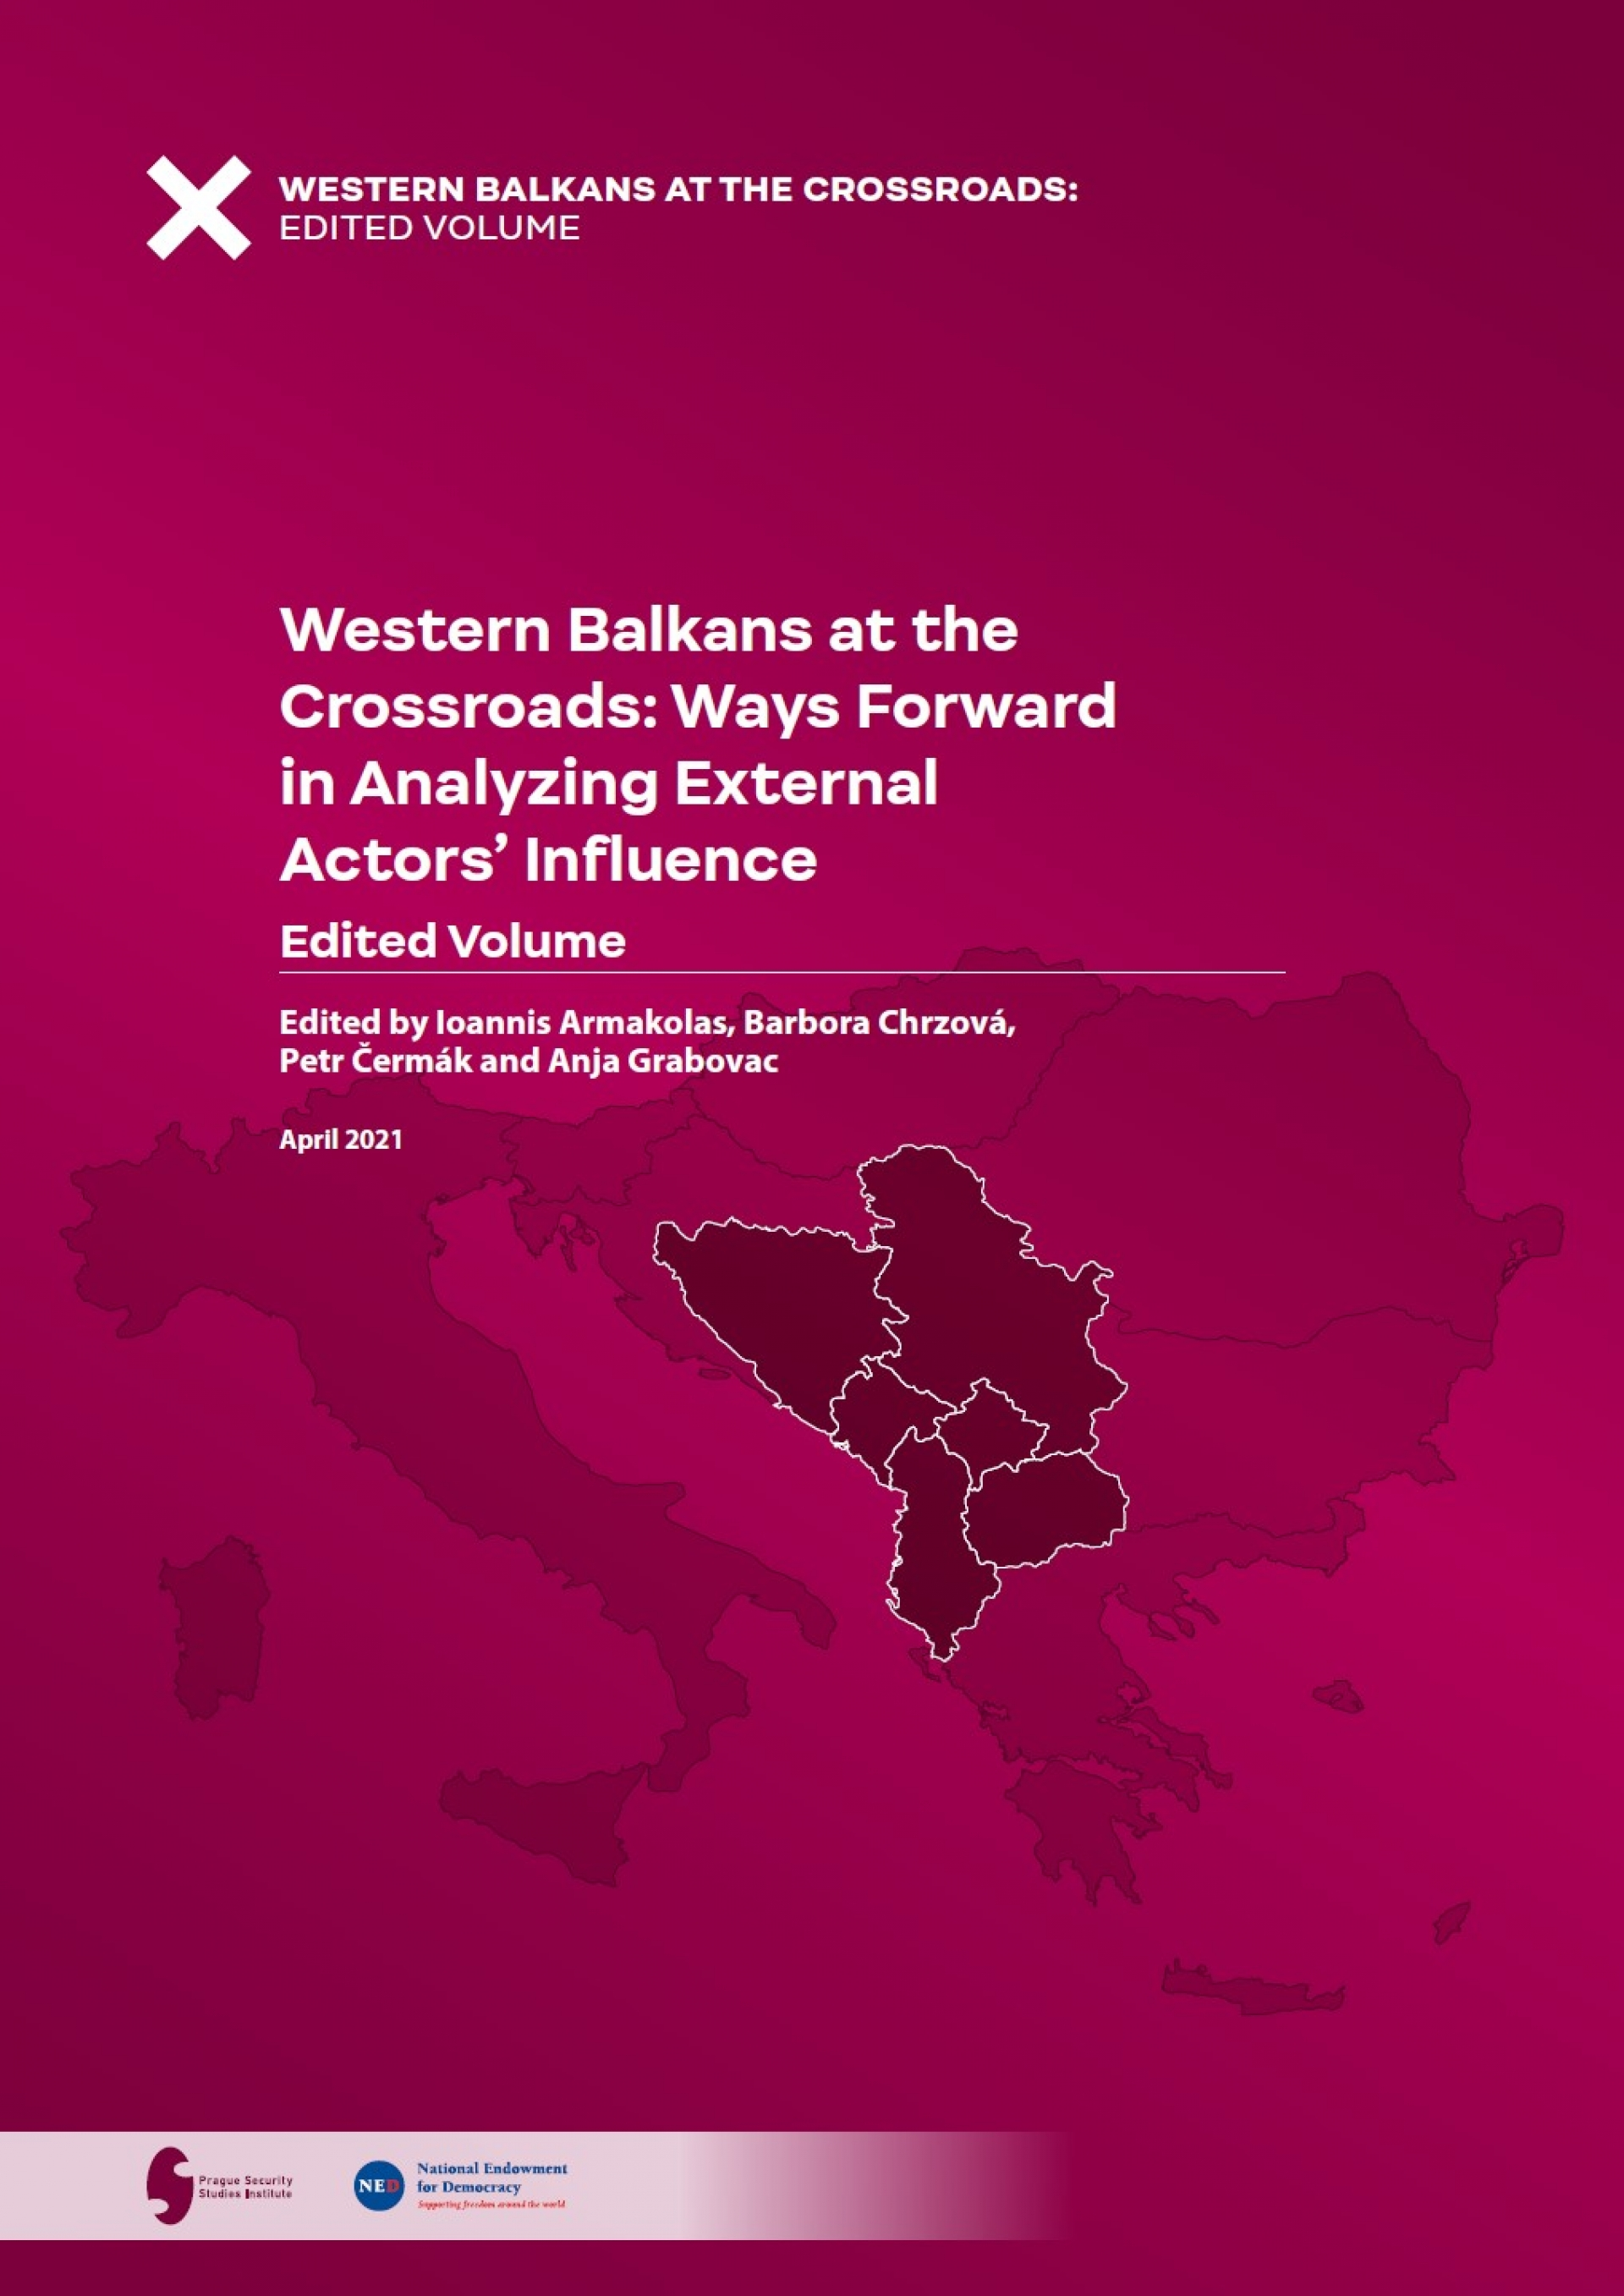 Western Balkans at the Crossroads: Ways forward in analyzing External Actors